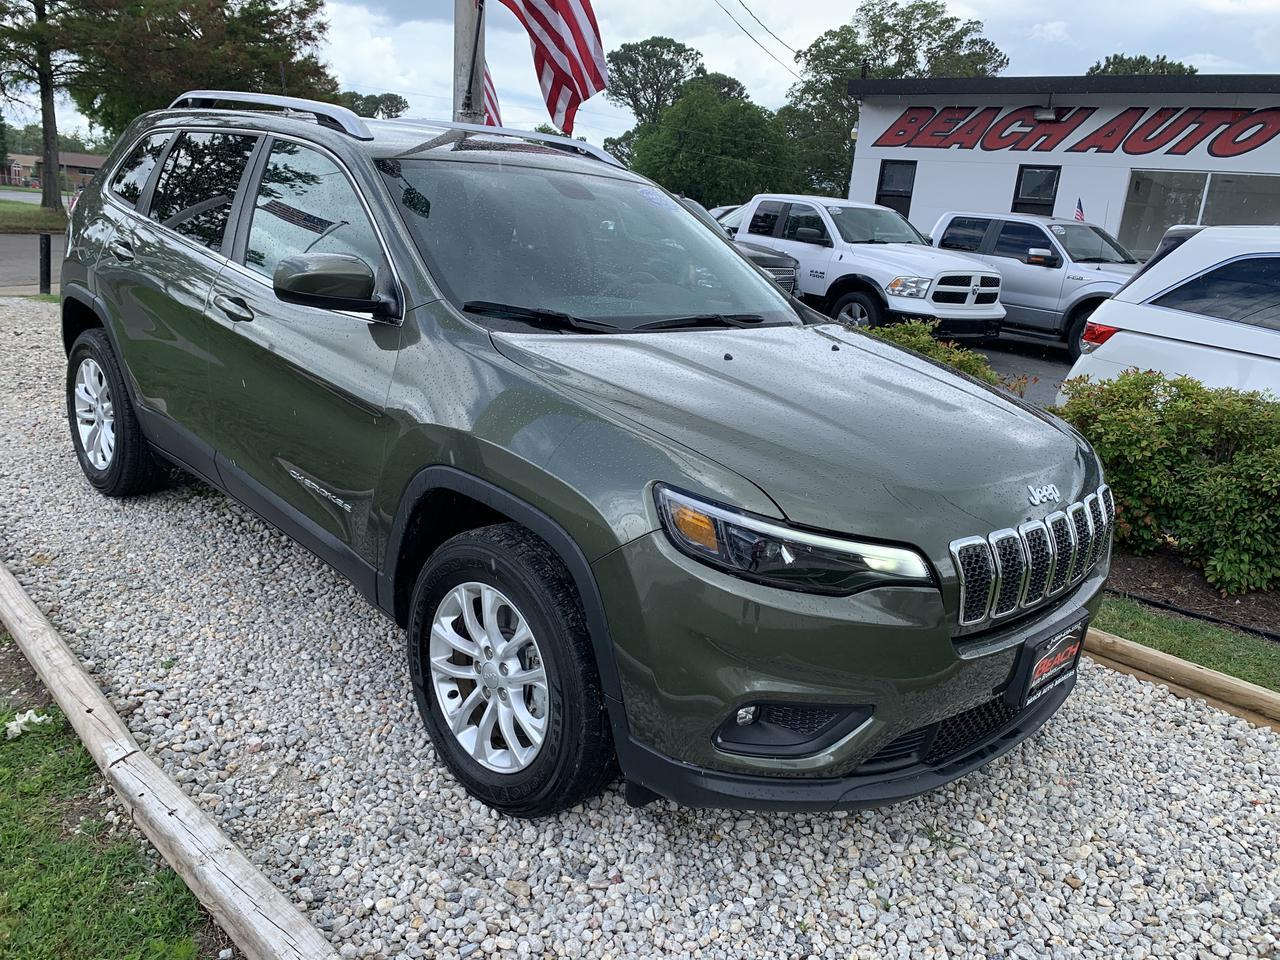 2019 JEEP CHEROKEE LATITUDE 4X4, WARRANTY, SIRIUS SATELLITE RADIO, CLIMATE CONTROL, BACKUP CAM, BLUETOOTH, 1 OWNER! Norfolk VA